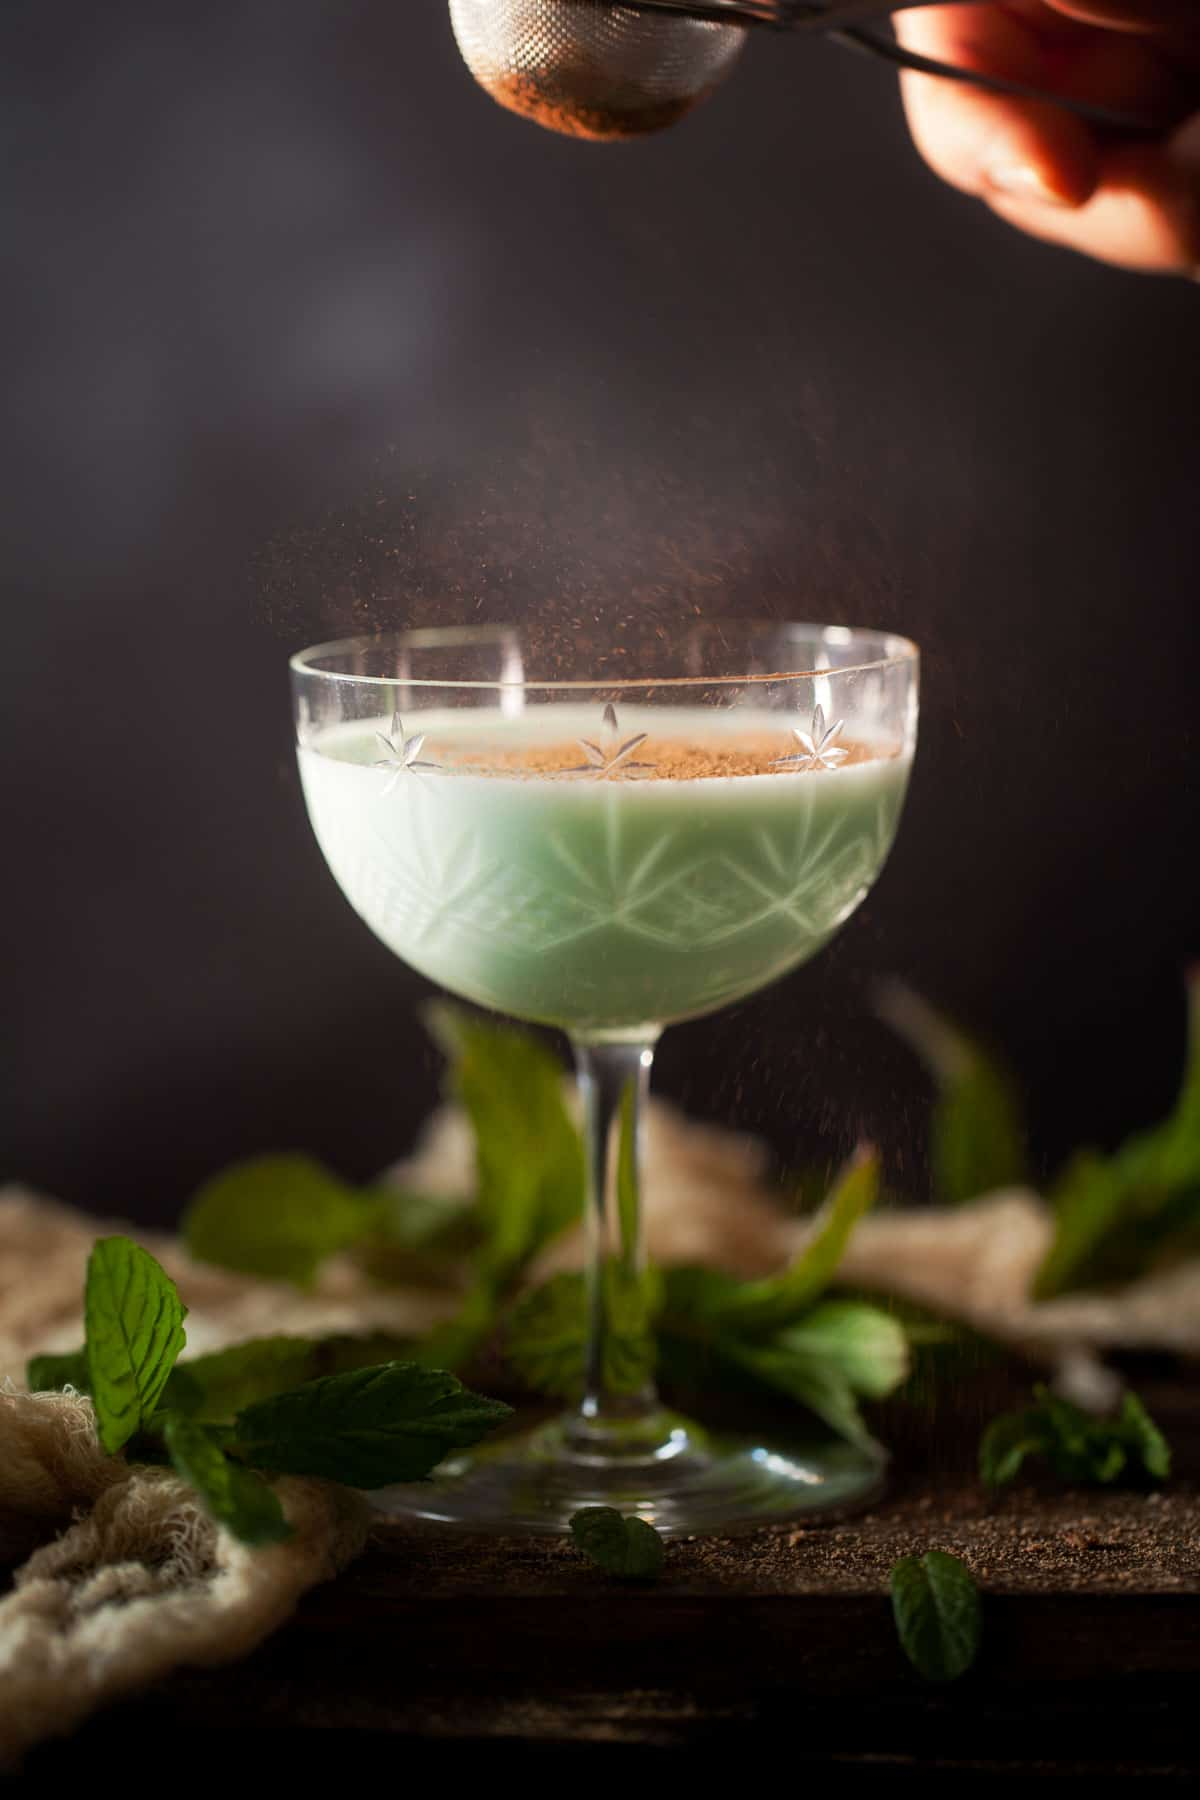 A creamy gin alexander cocktail flavoured with green creme de menthe. Served in a vintage cocktail glass with cocoa powder being dusted over the top